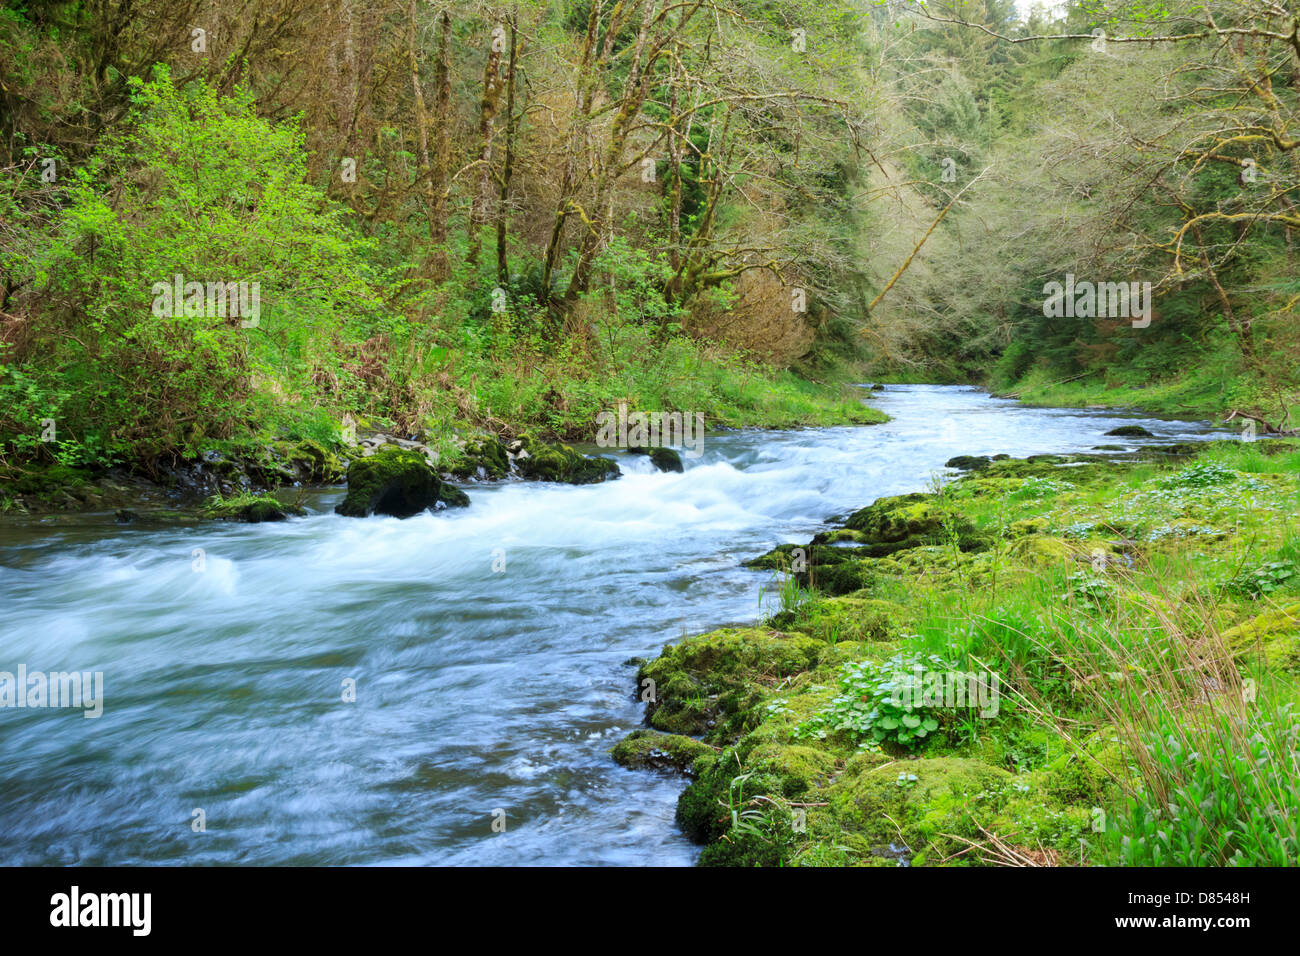 41,378.08473 Beautiful spring landscape of the Nestucca River, with low and wide-angle view of rapids flowing through Stock Photo